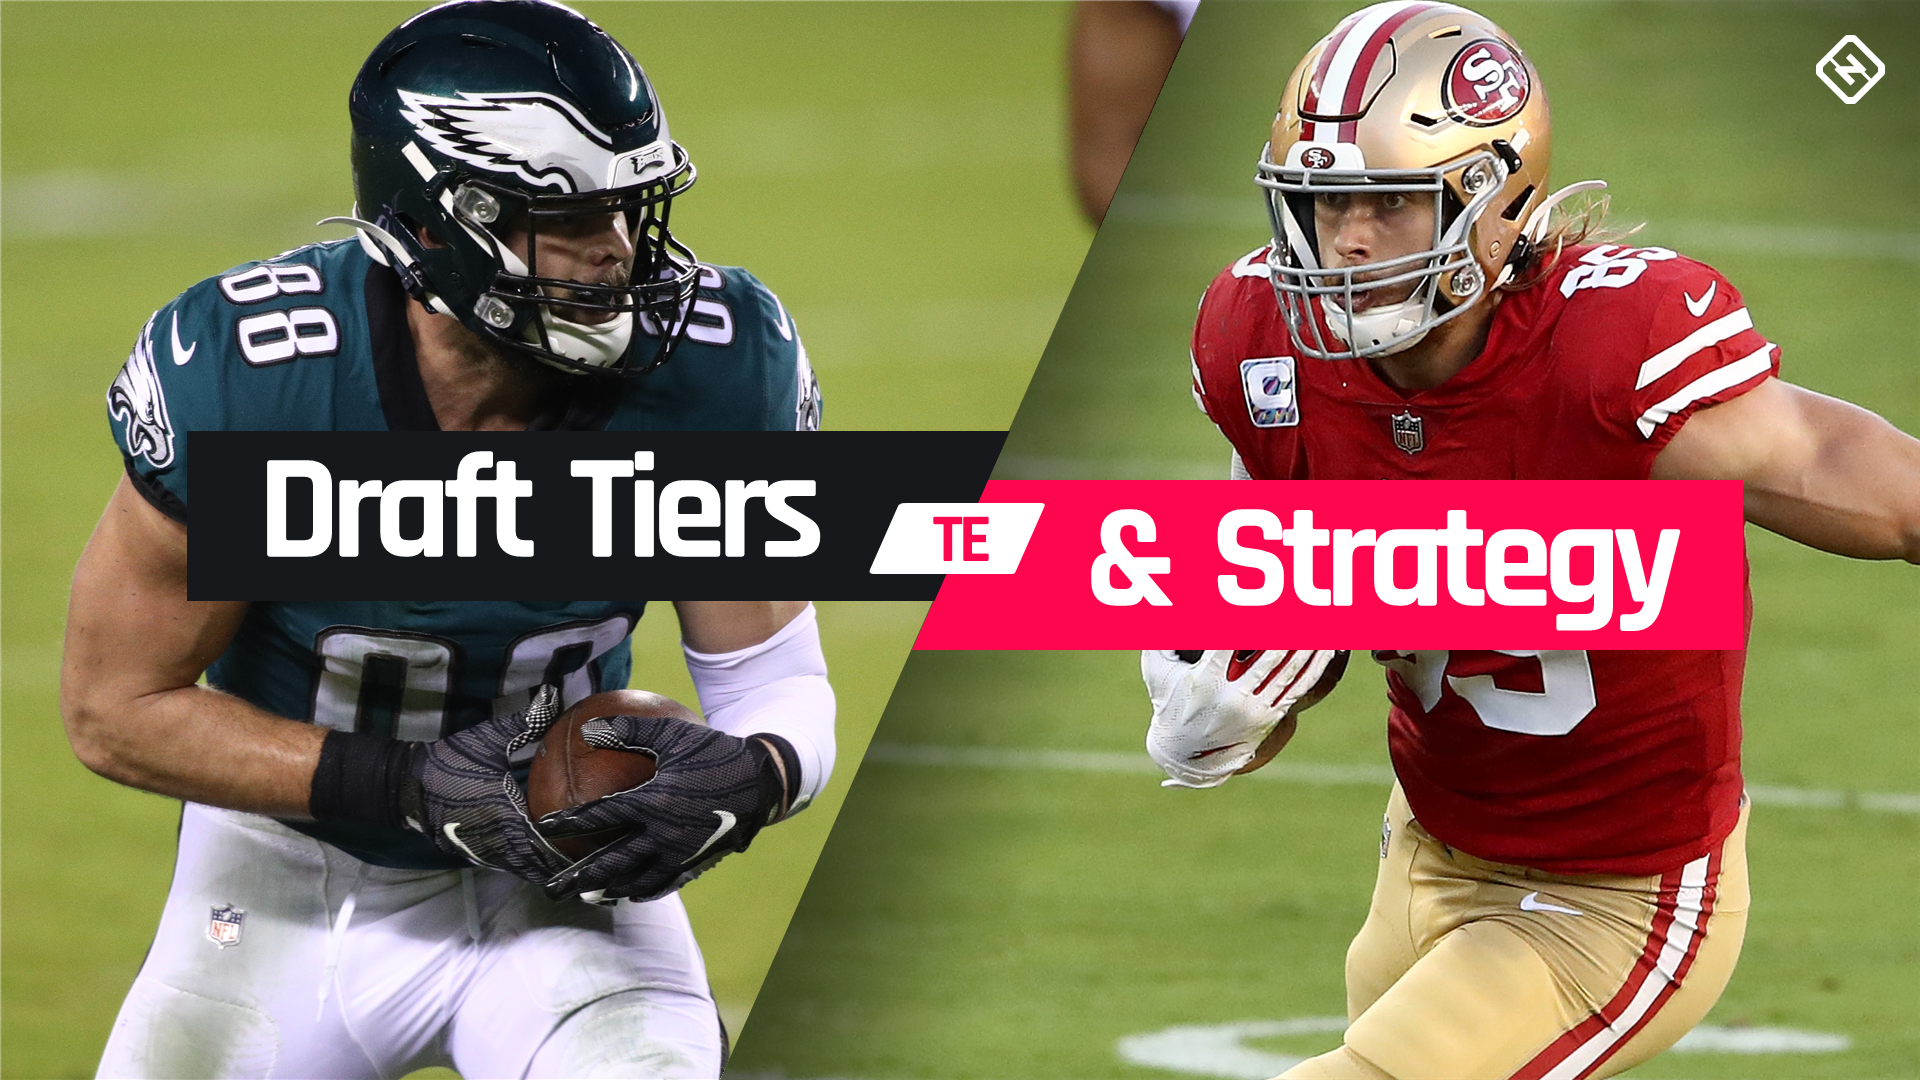 2021 fantasy te tiers and strategy ftr qr2kdycm85oa1vhcz8zpg2akt